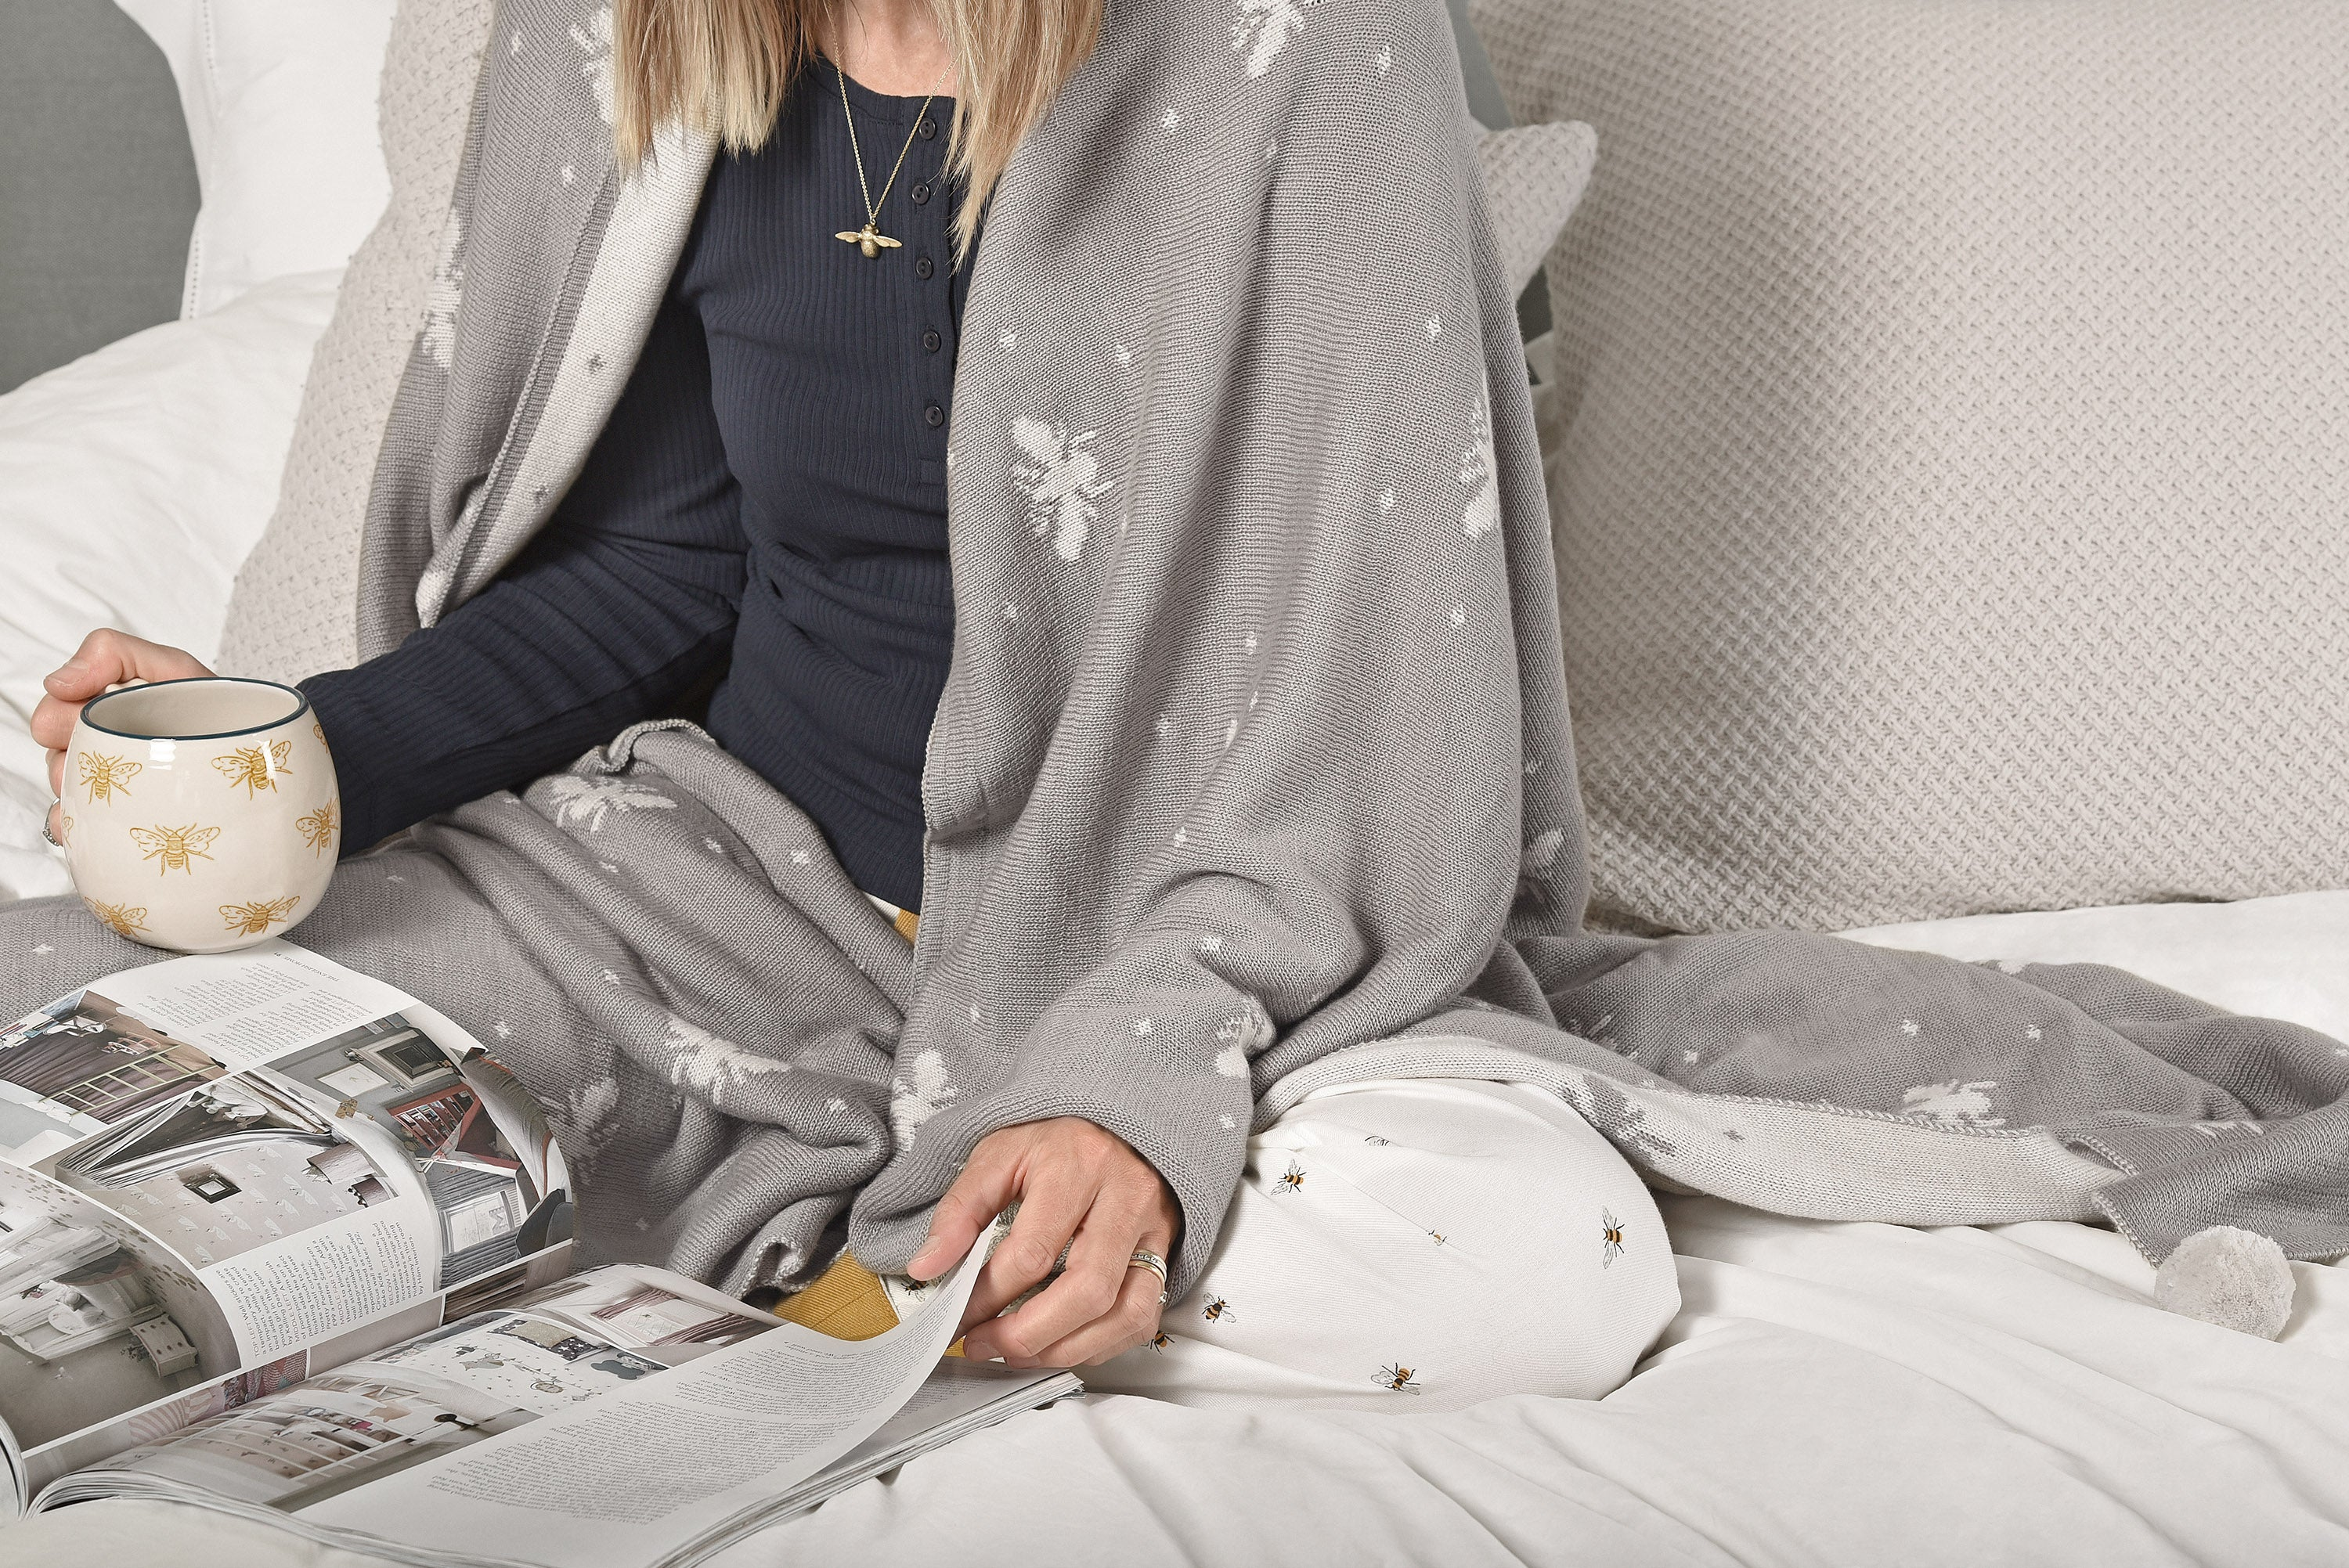 Gifts for her Christmas 2020 by Sophie Allport